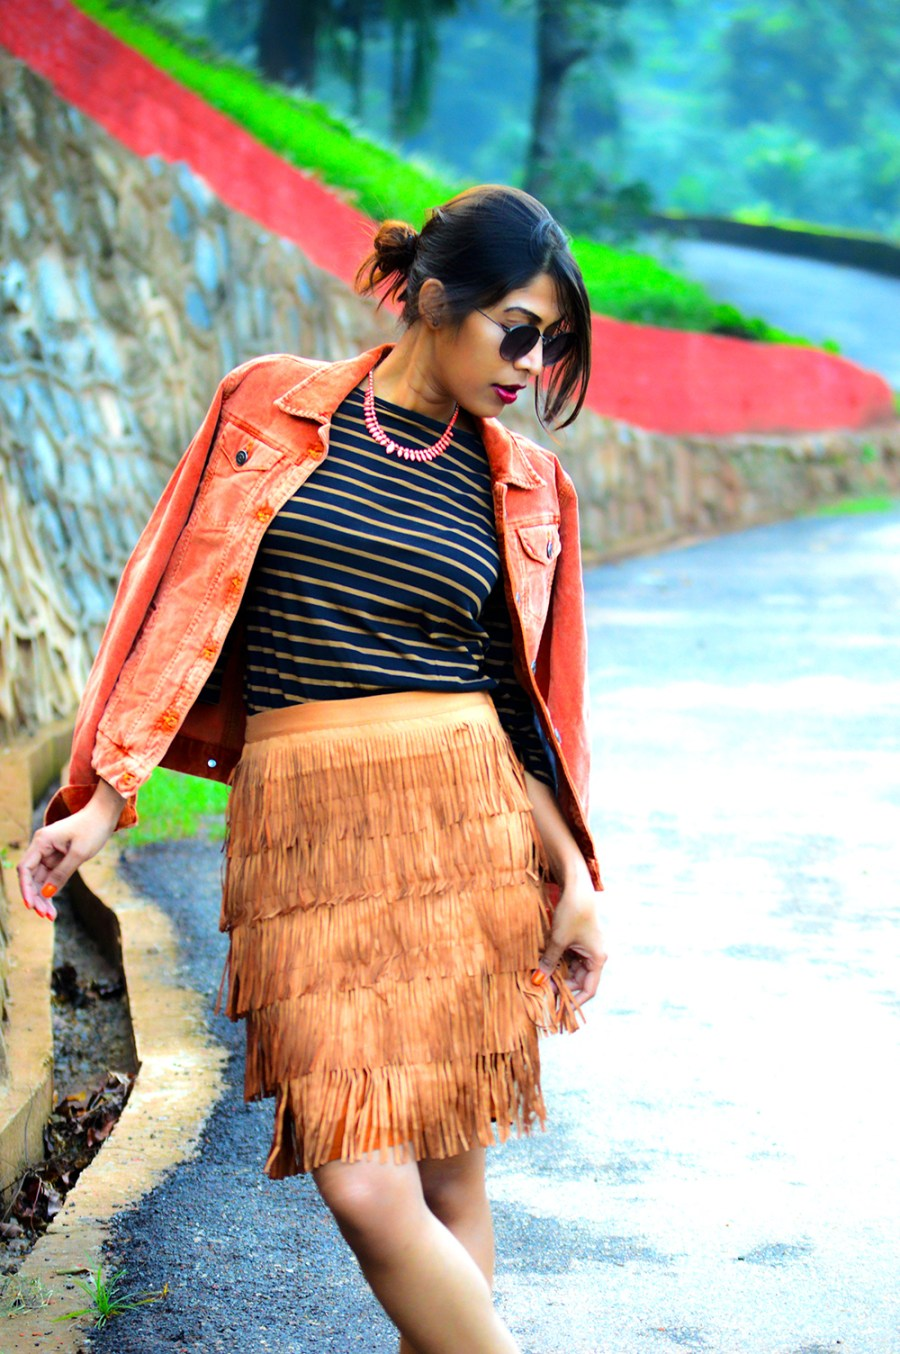 fashion, style, street style, street fashion, sarmistha goswami, style over coffee, pankaj jyoti barua, fashion blogger, indian fashion blogger, summer fashion, indian street style photography, fringe skirt, corduroy jacket, striped tee, lenskart sunglasses, Summer Street Style-8